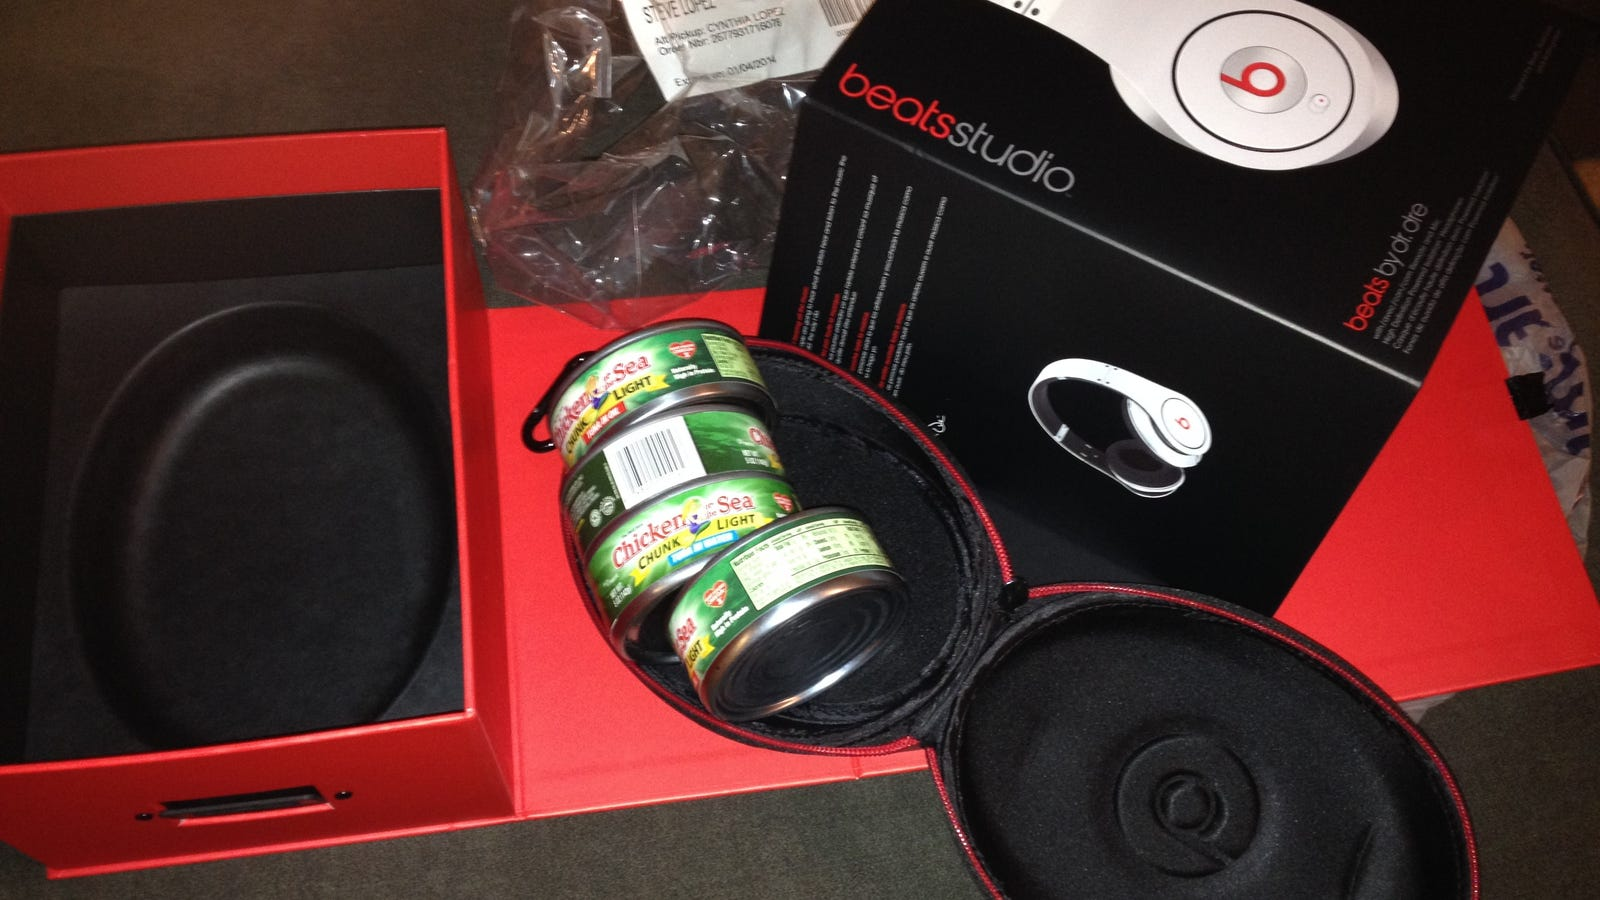 teal wireless headphones - Family Opens Beats Headphones on Christmas, Finds Tuna Instead